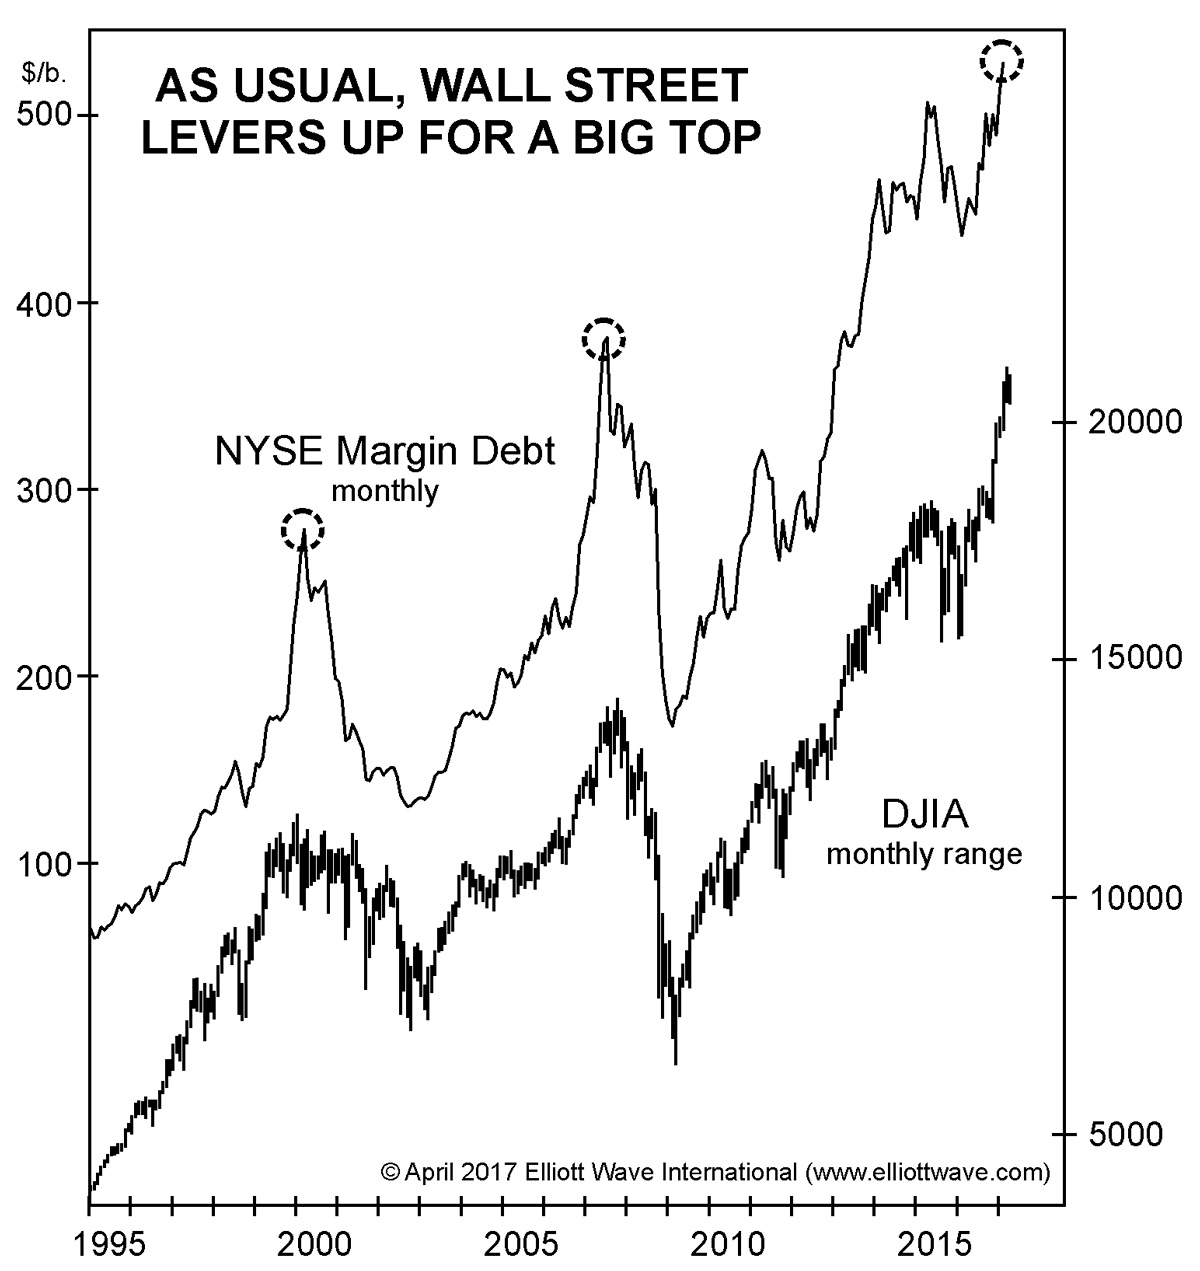 As Usual, Wall Street Levers Up for a Big Top